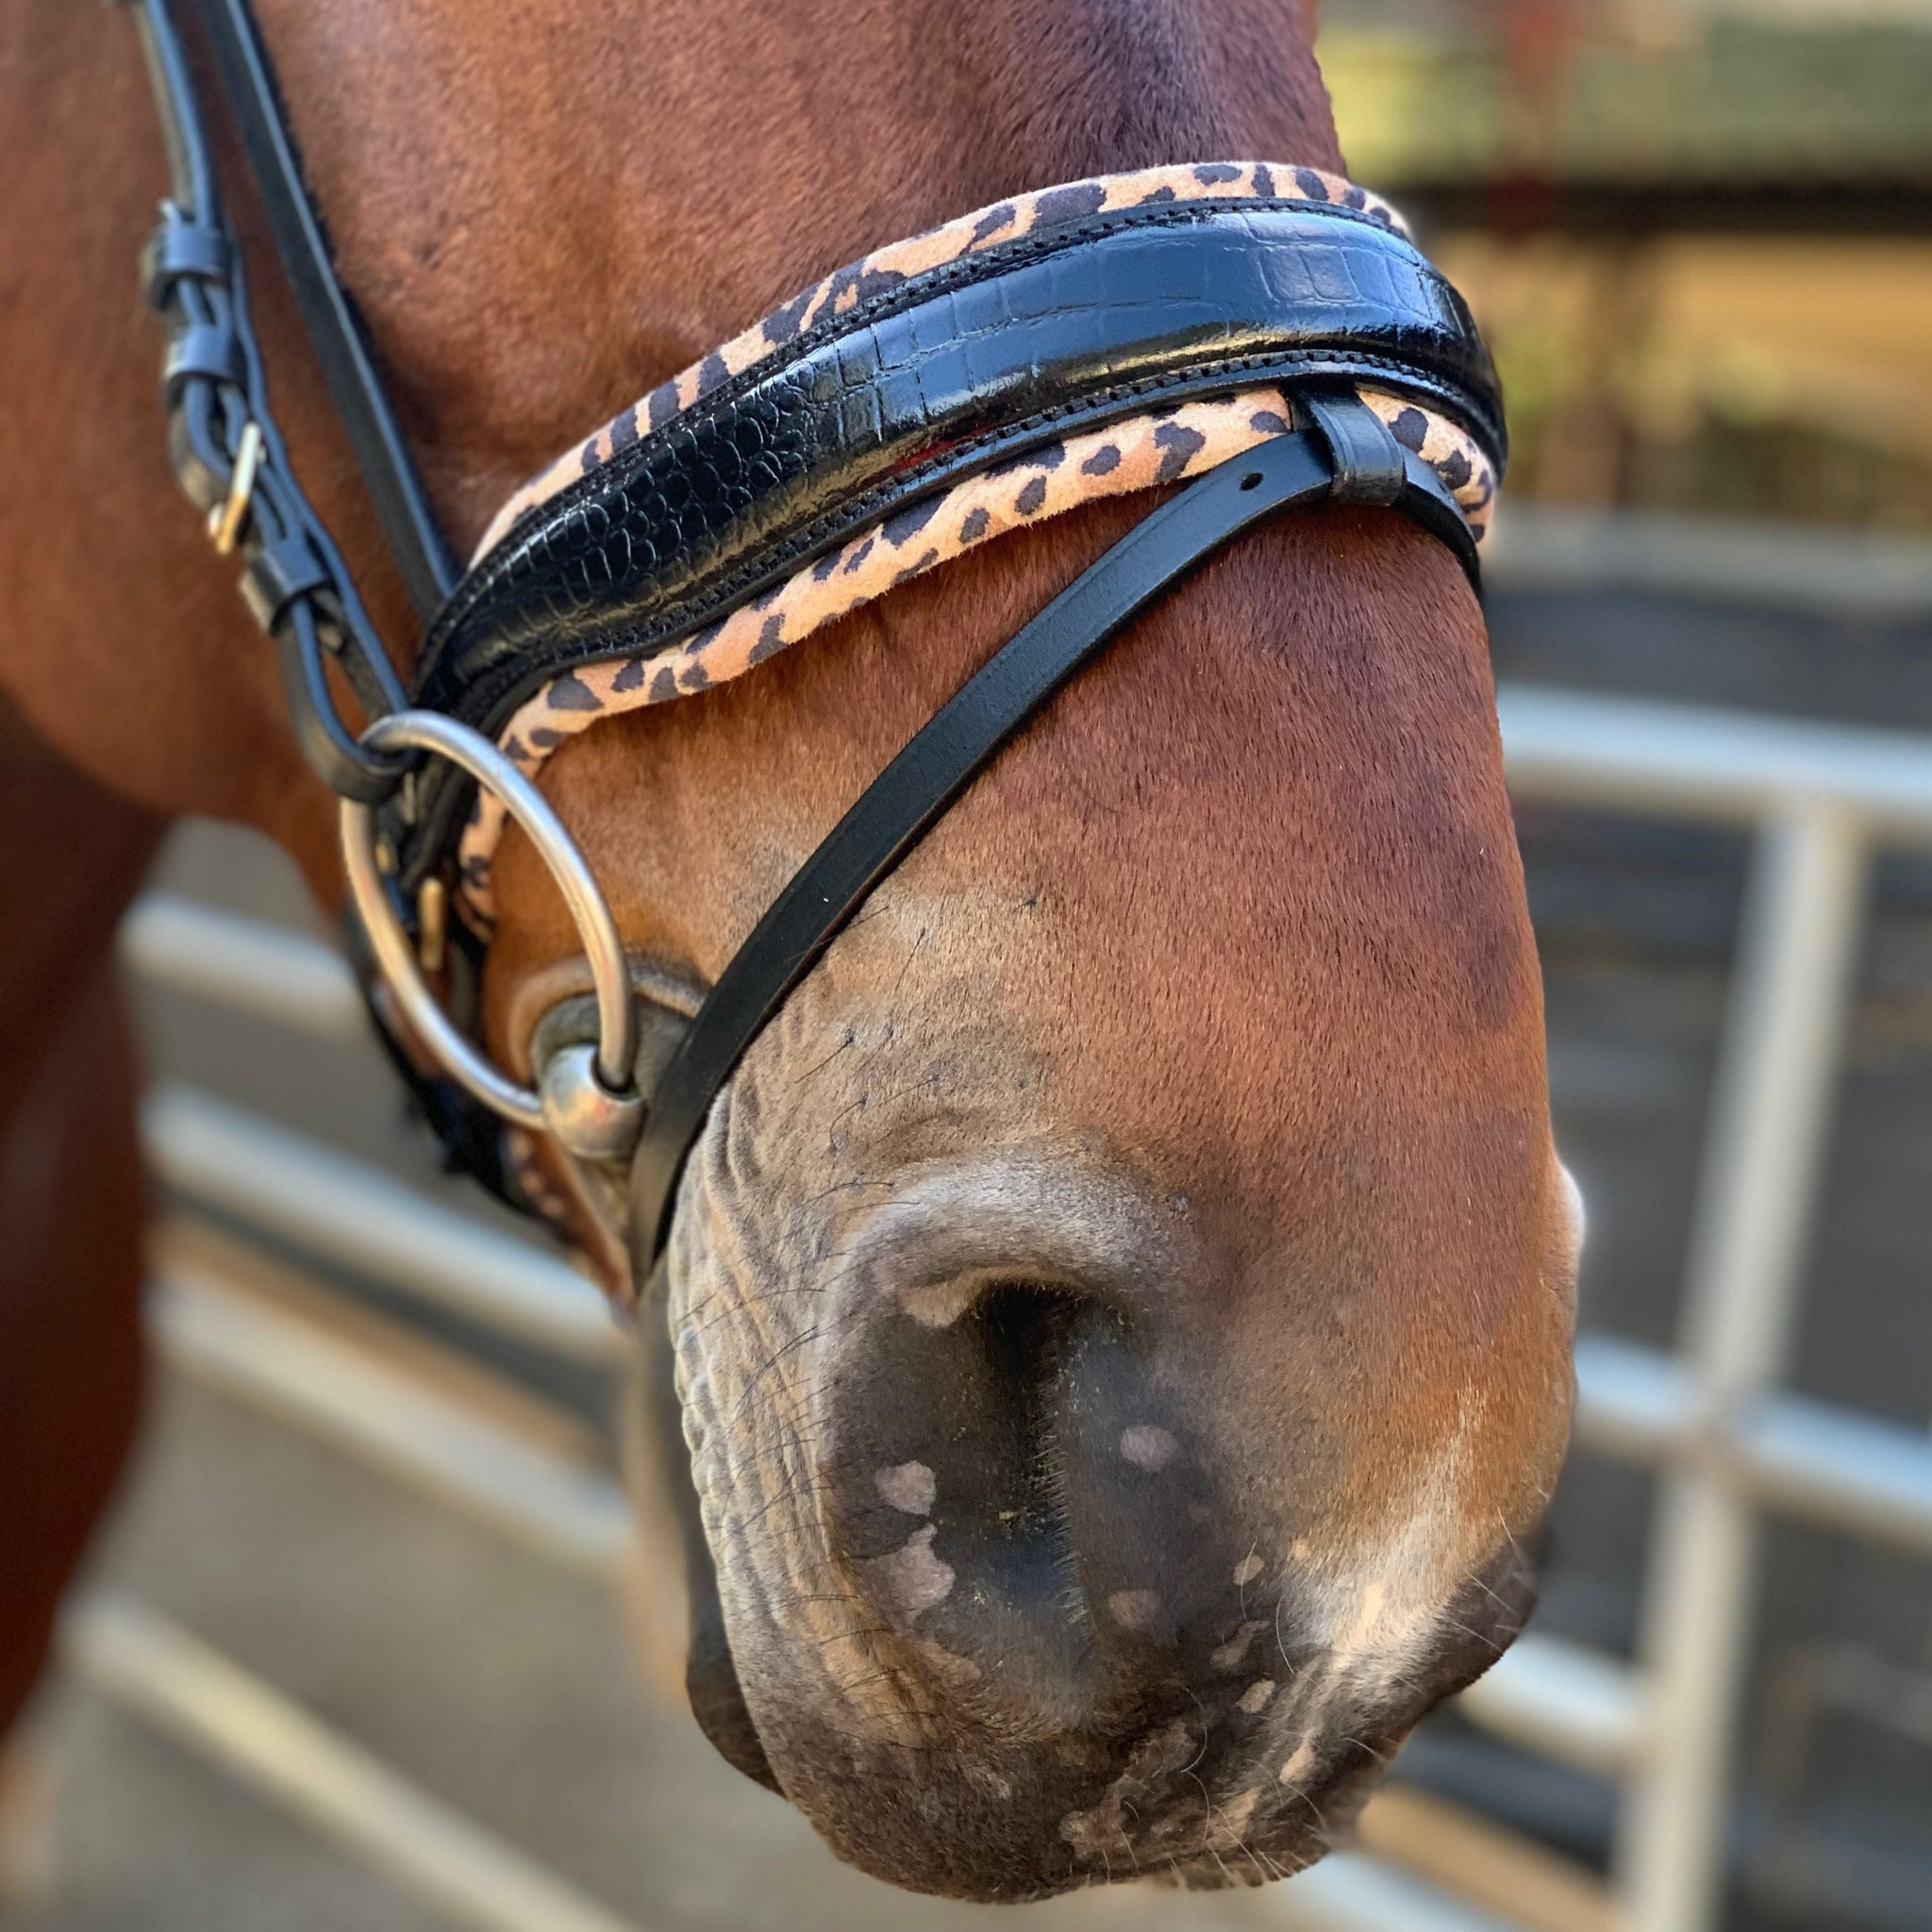 New curvy Black and Golden Crystal Browband in Black and brown leather CLEARANCE